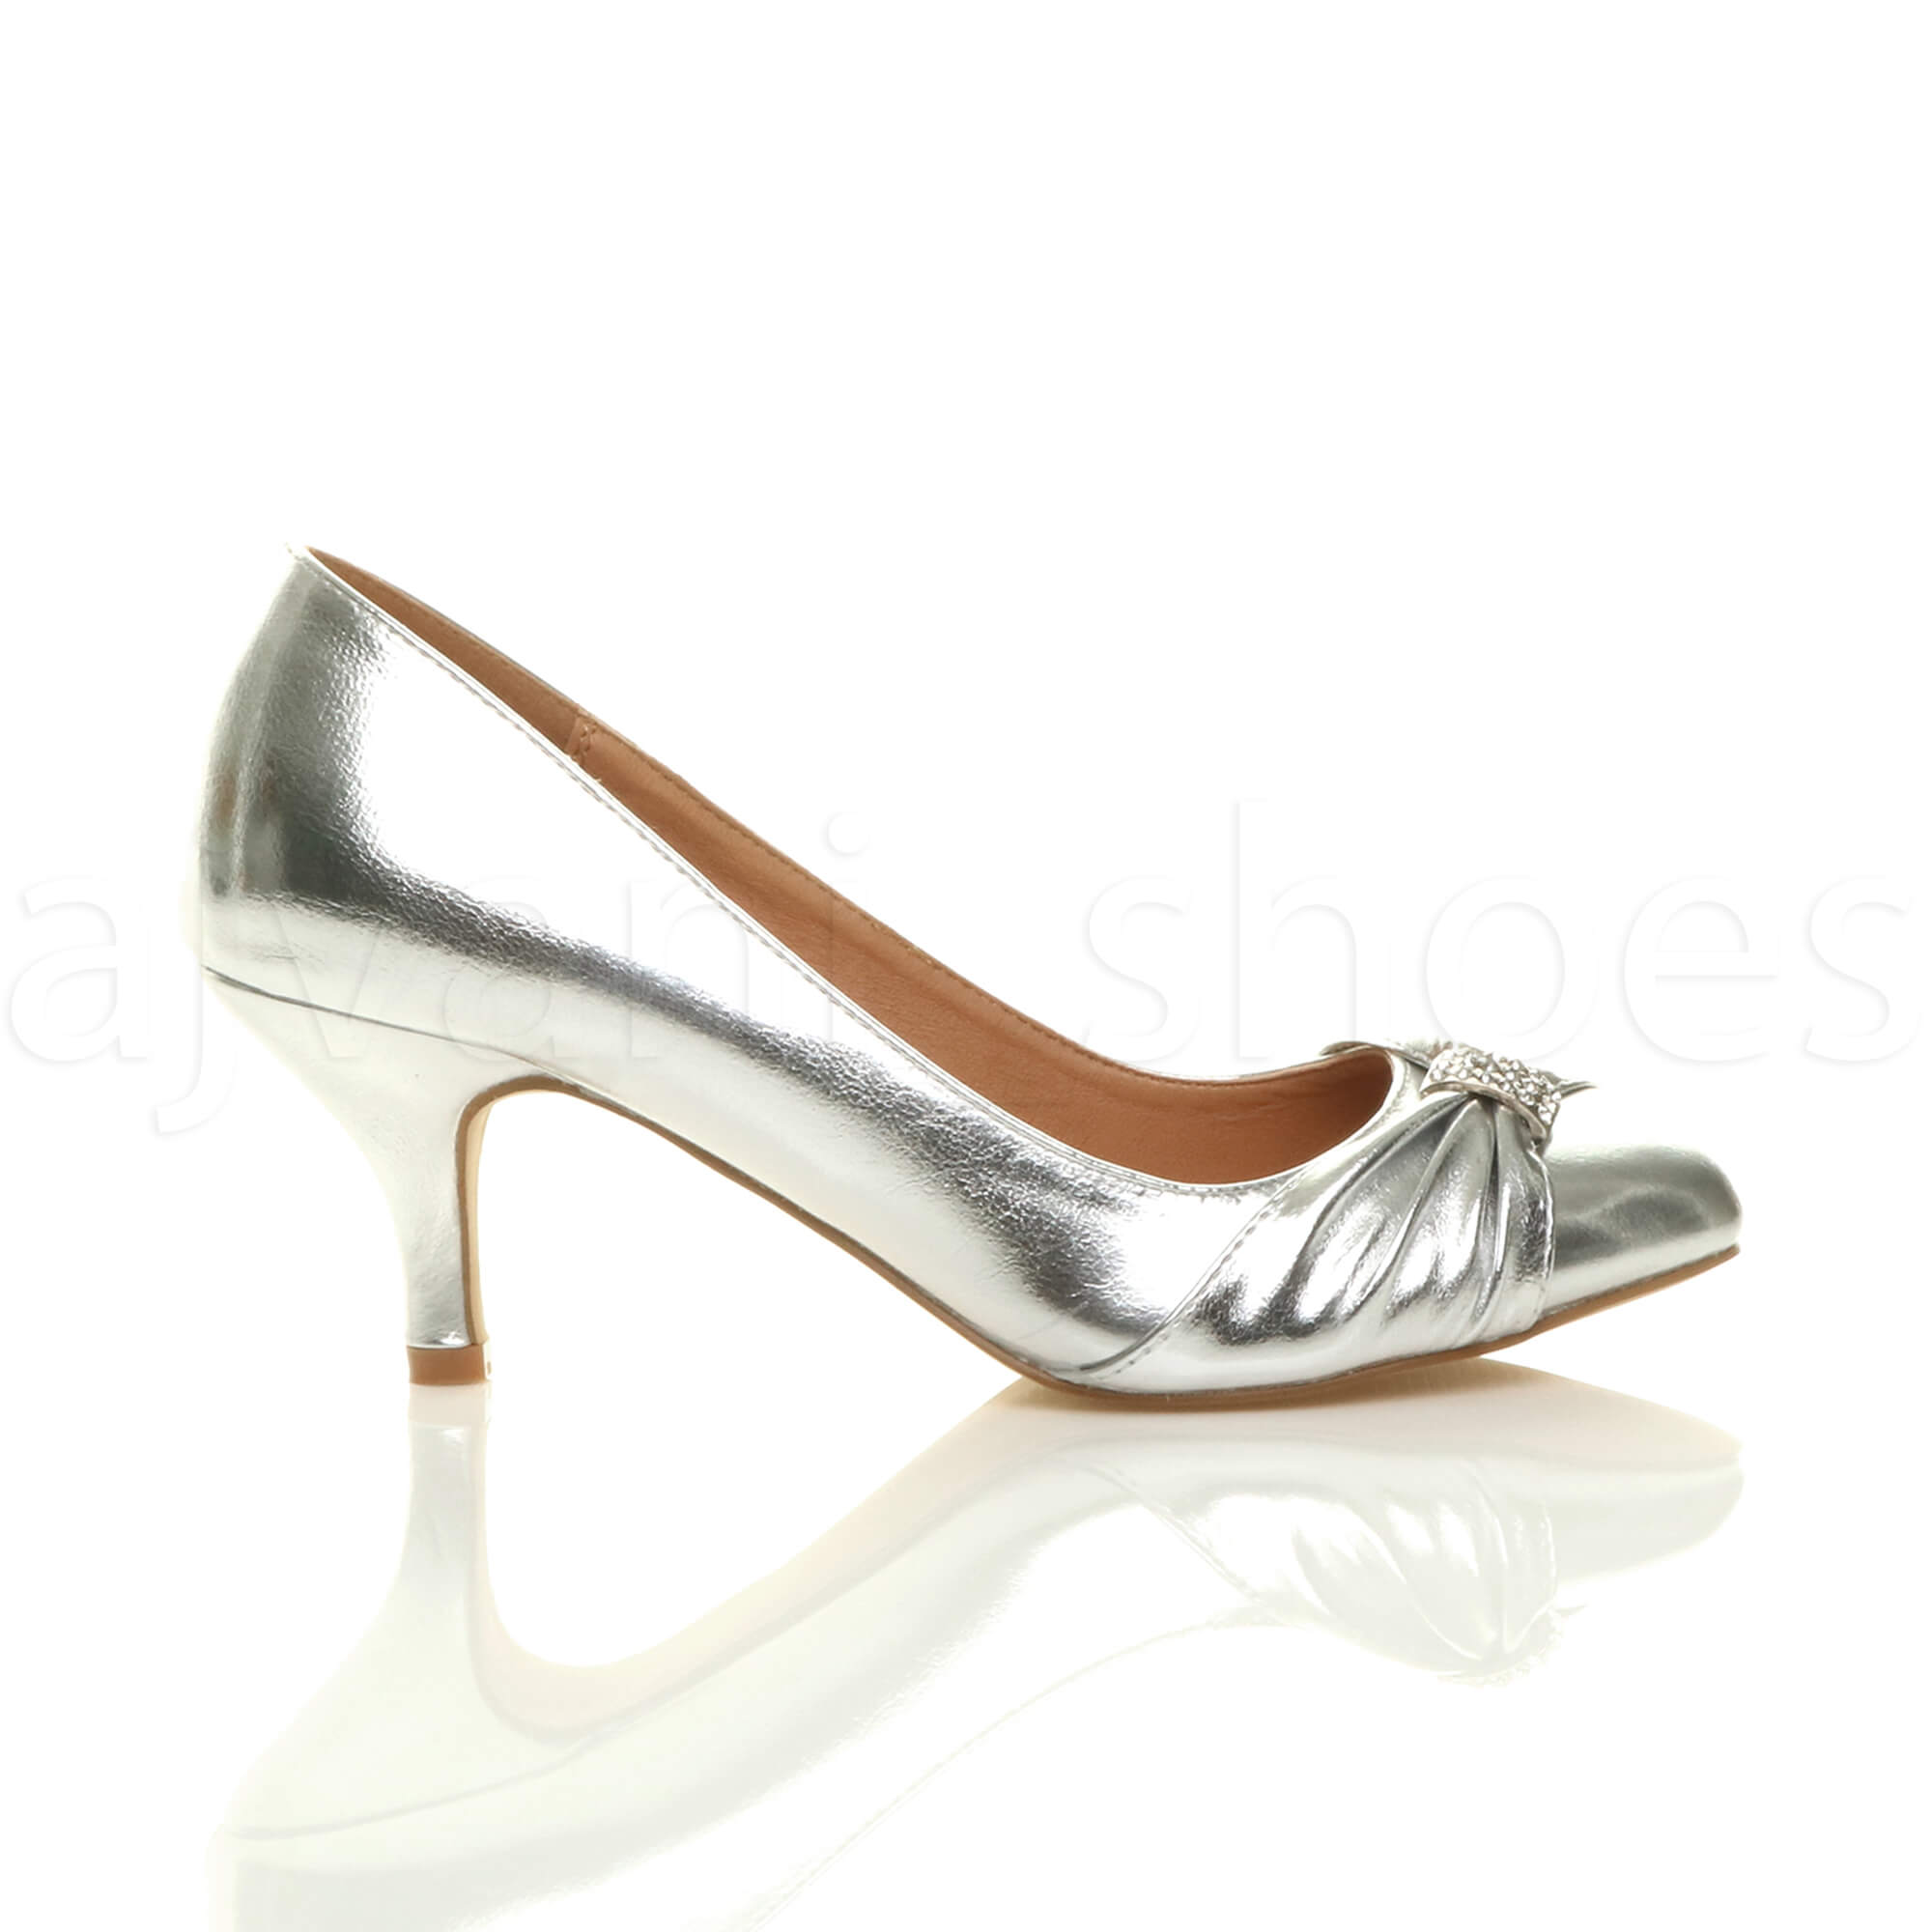 WOMENS-LADIES-MID-HEEL-RUCHED-DIAMANTE-WEDDING-PROM-EVENING-COURT-SHOES-SIZE thumbnail 83